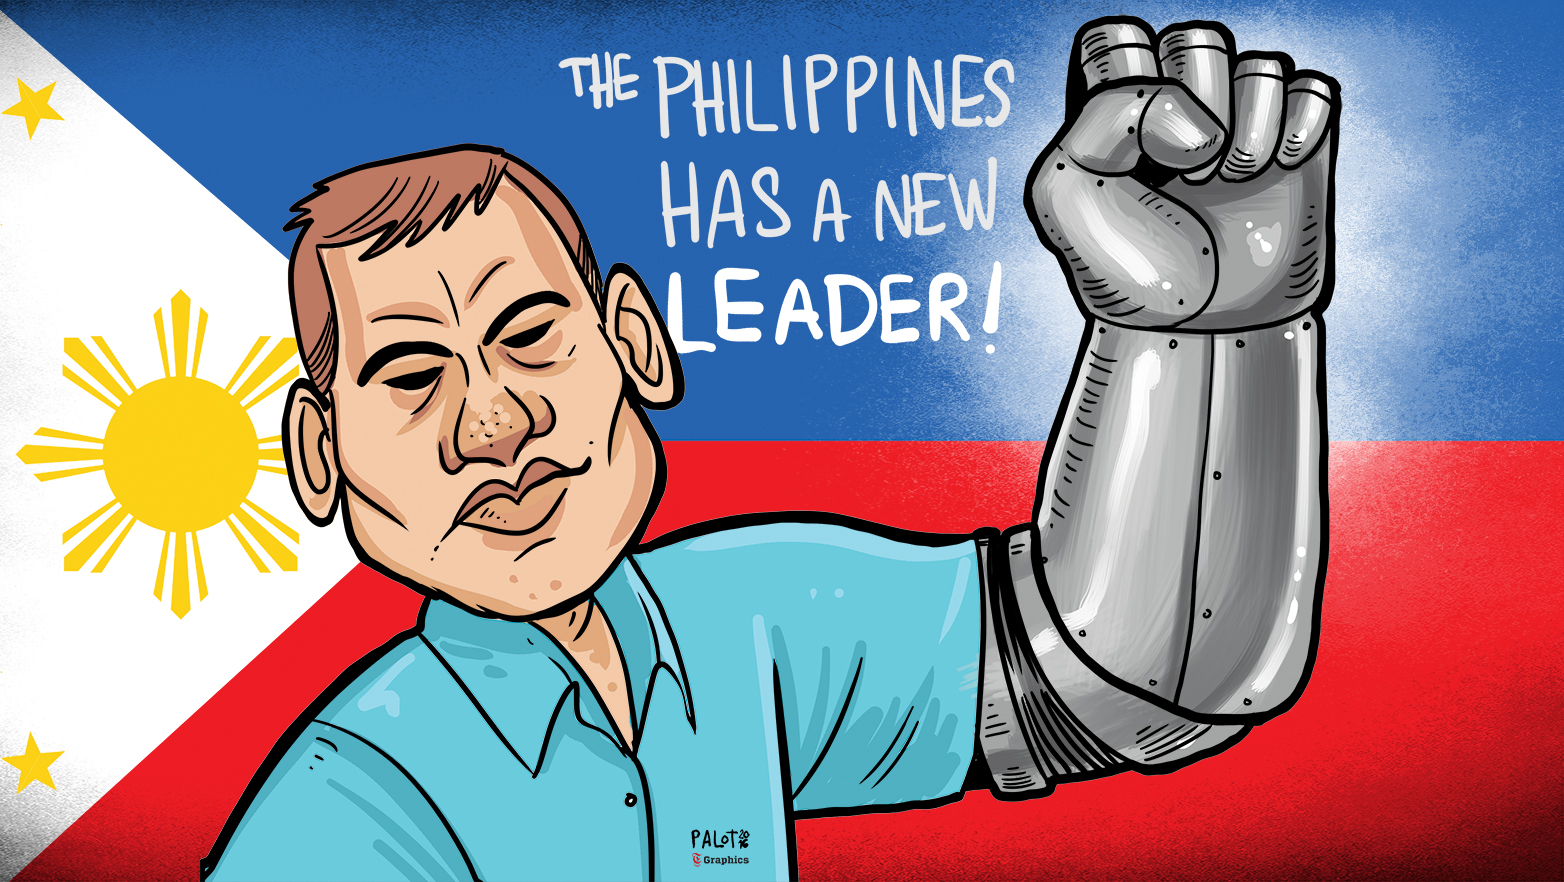 The Philippines has a new leader